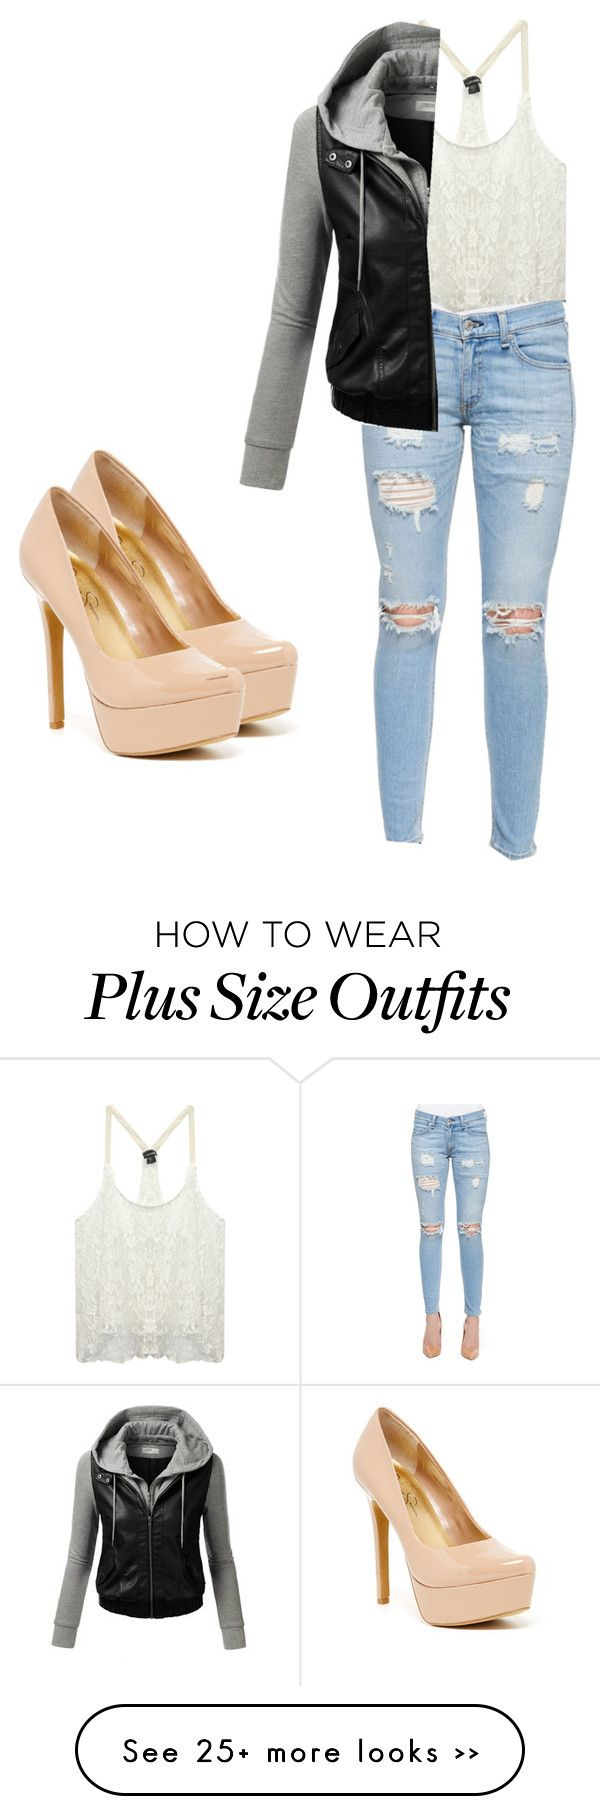 """Untitled"" by jennessa02 on Polyvore"